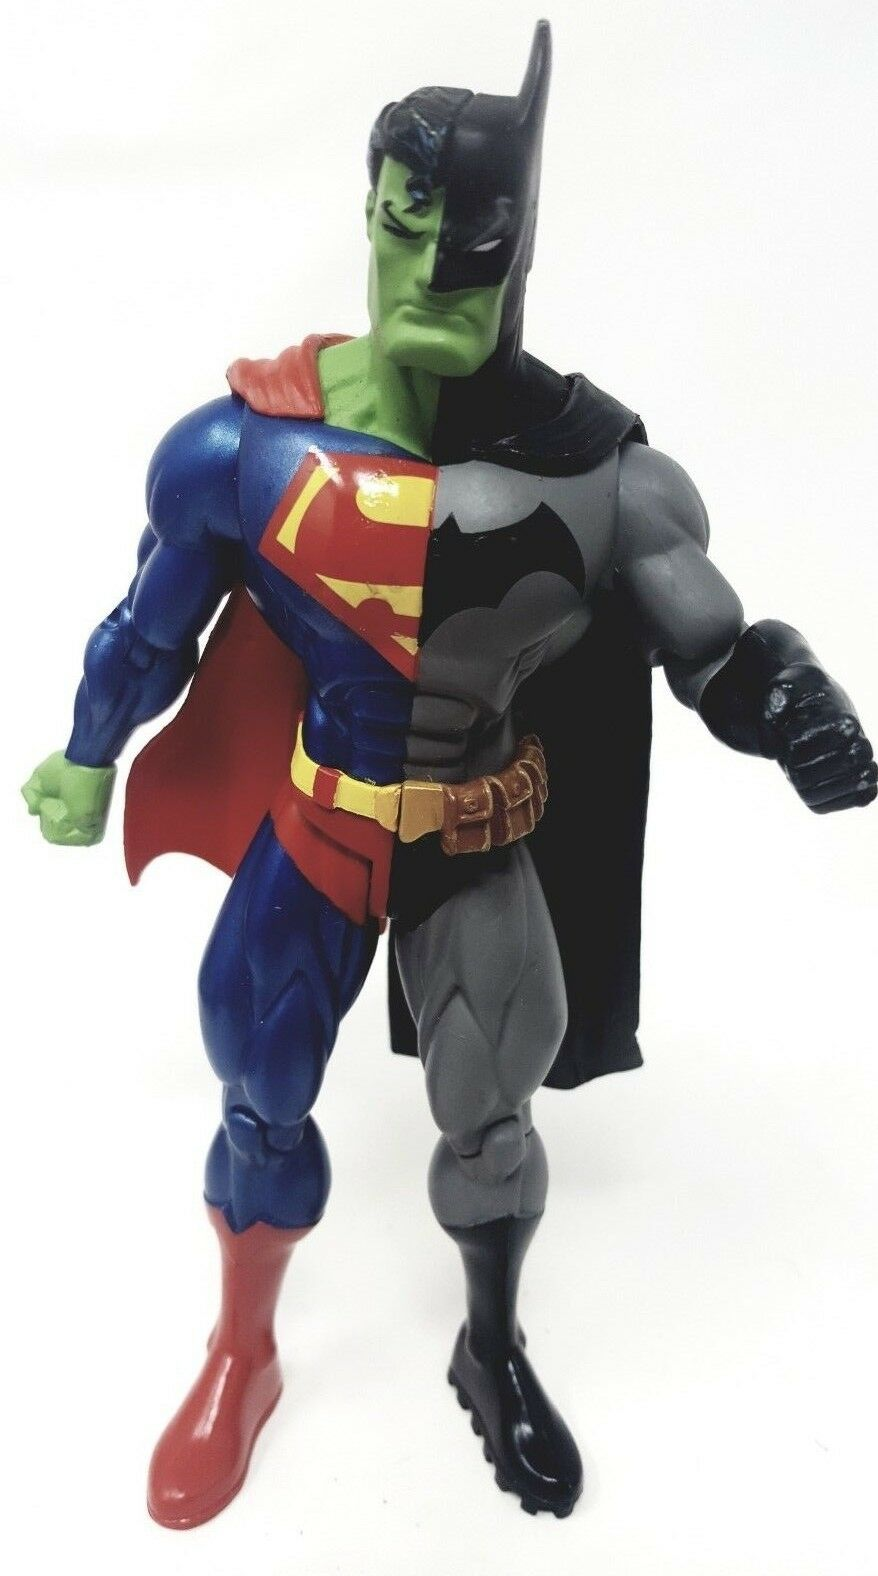 DC SUPERMAN composito UNIVERSO Direct BATMAN BATMAN BATMAN Vengeance ACTION FIGURE SERIE 5 (X 714166